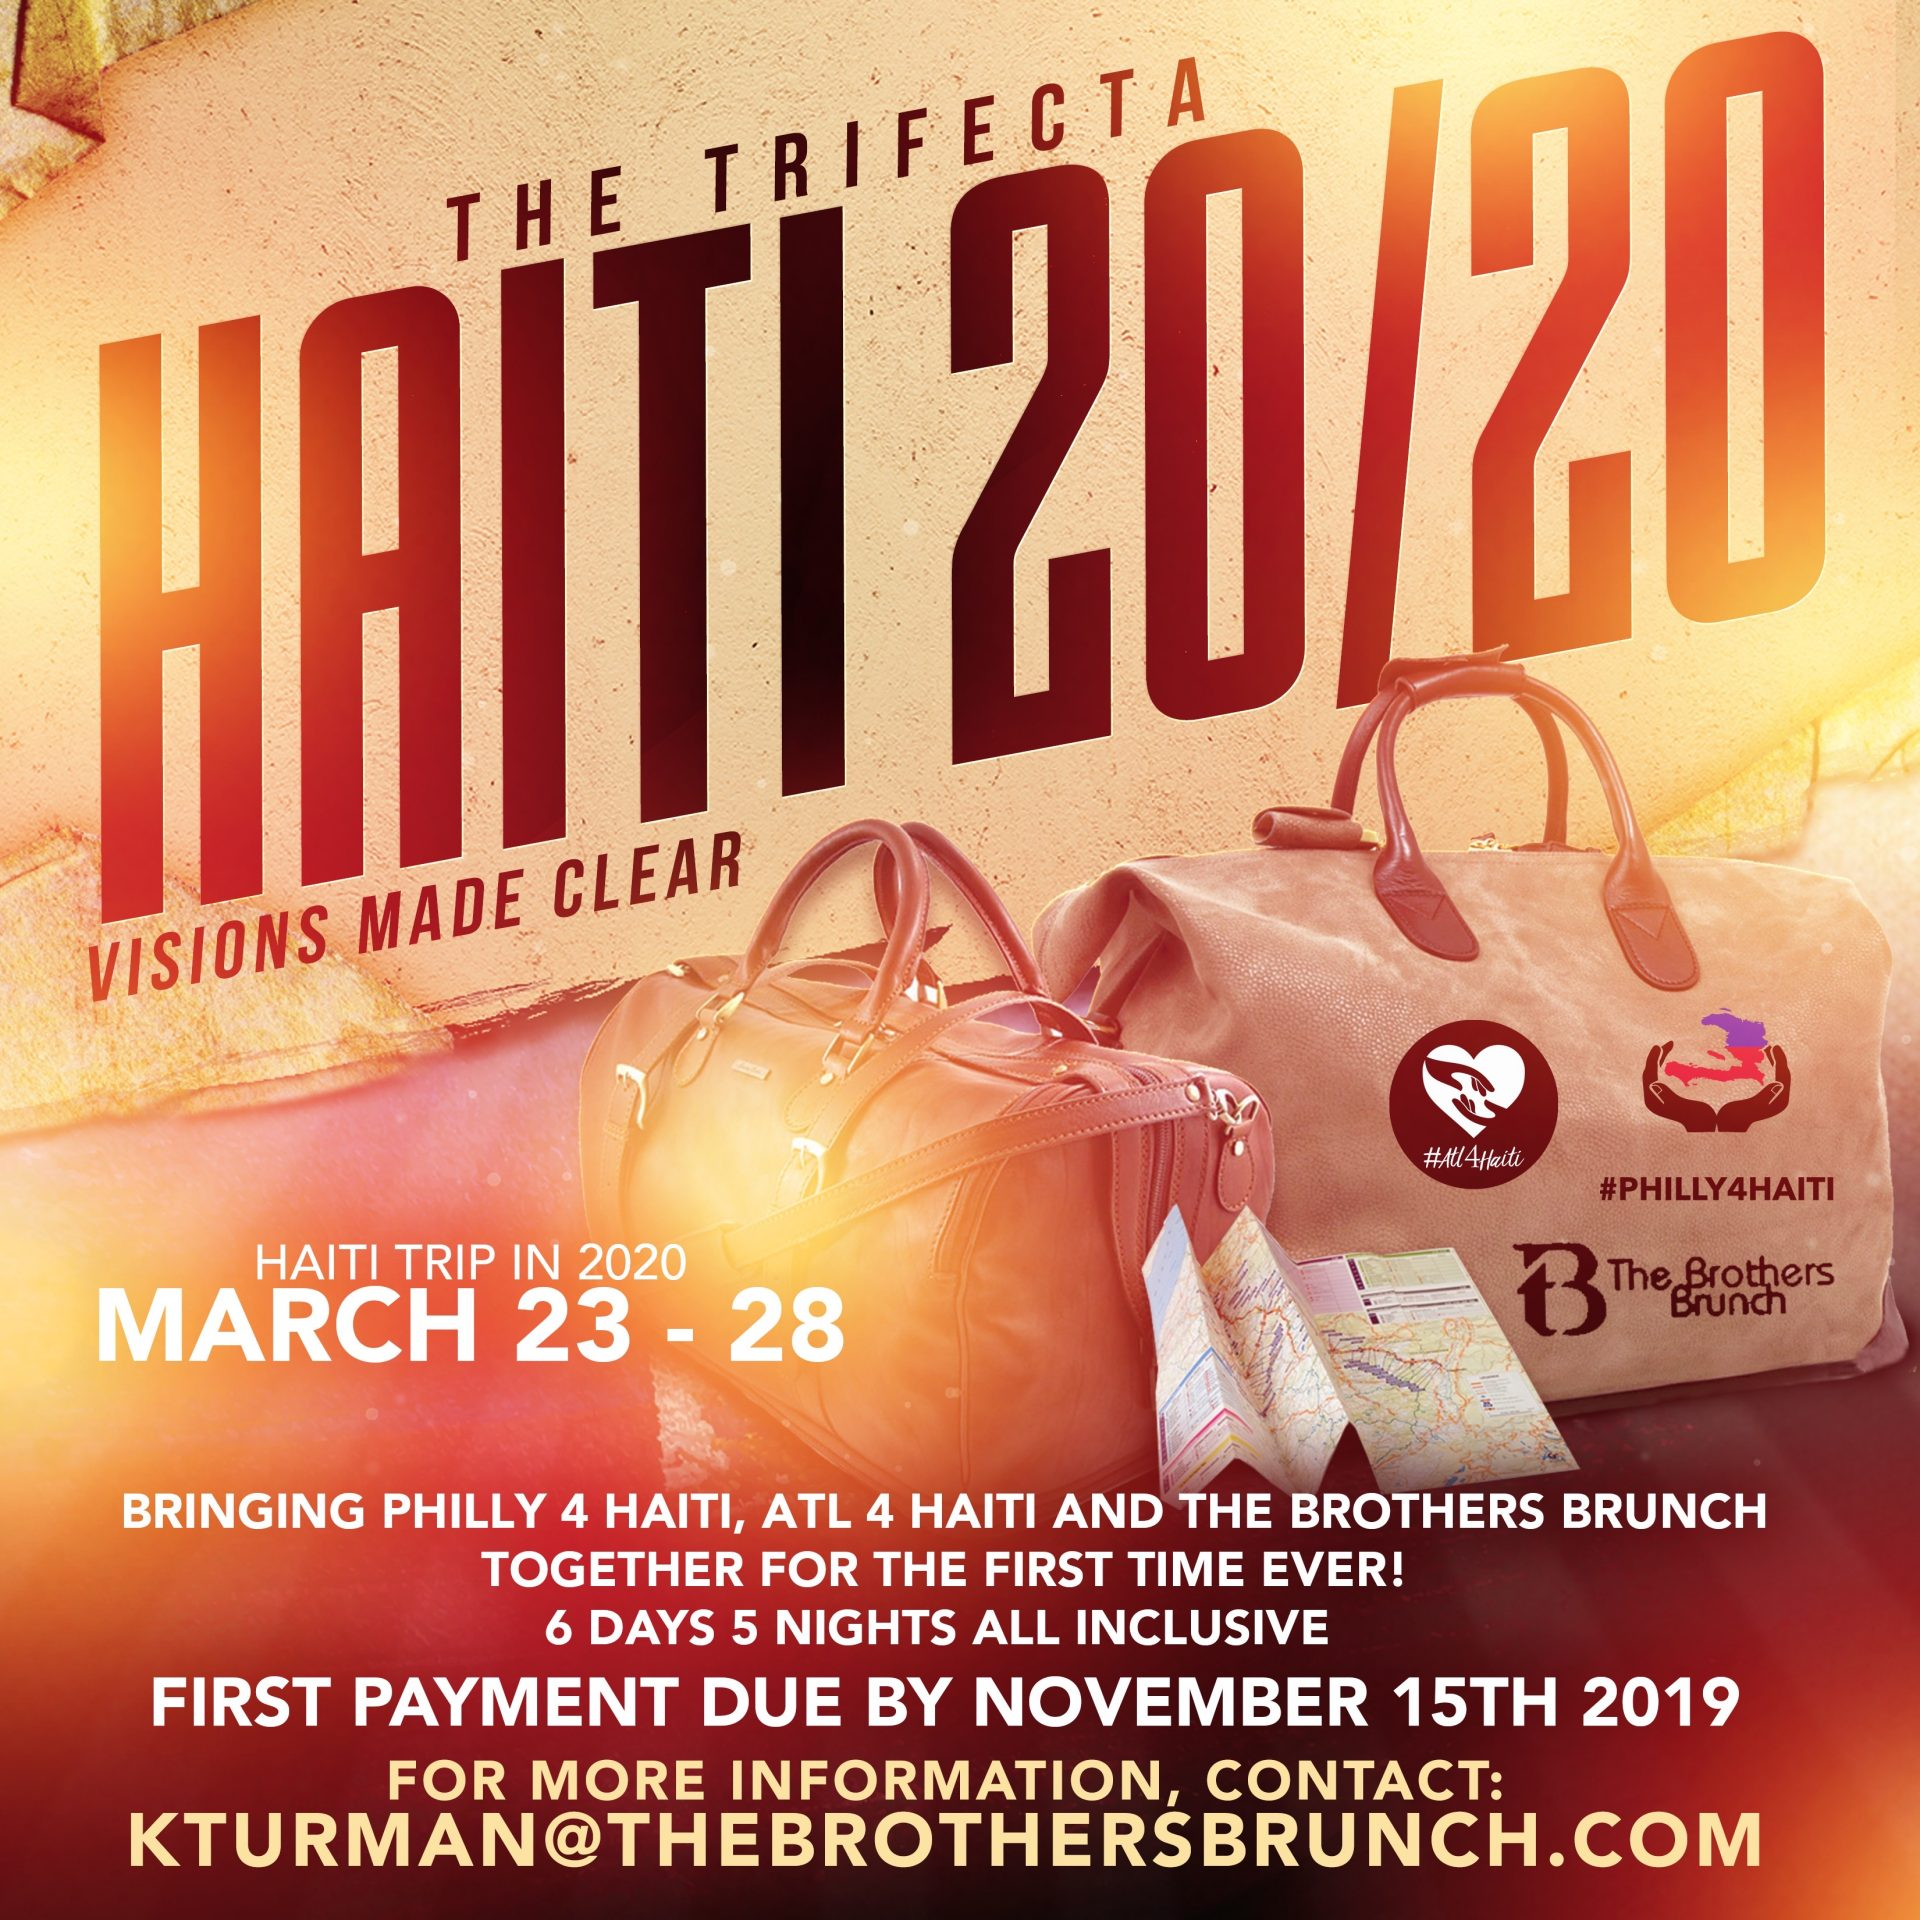 The Trifecta Haiti 20/20 Flyer